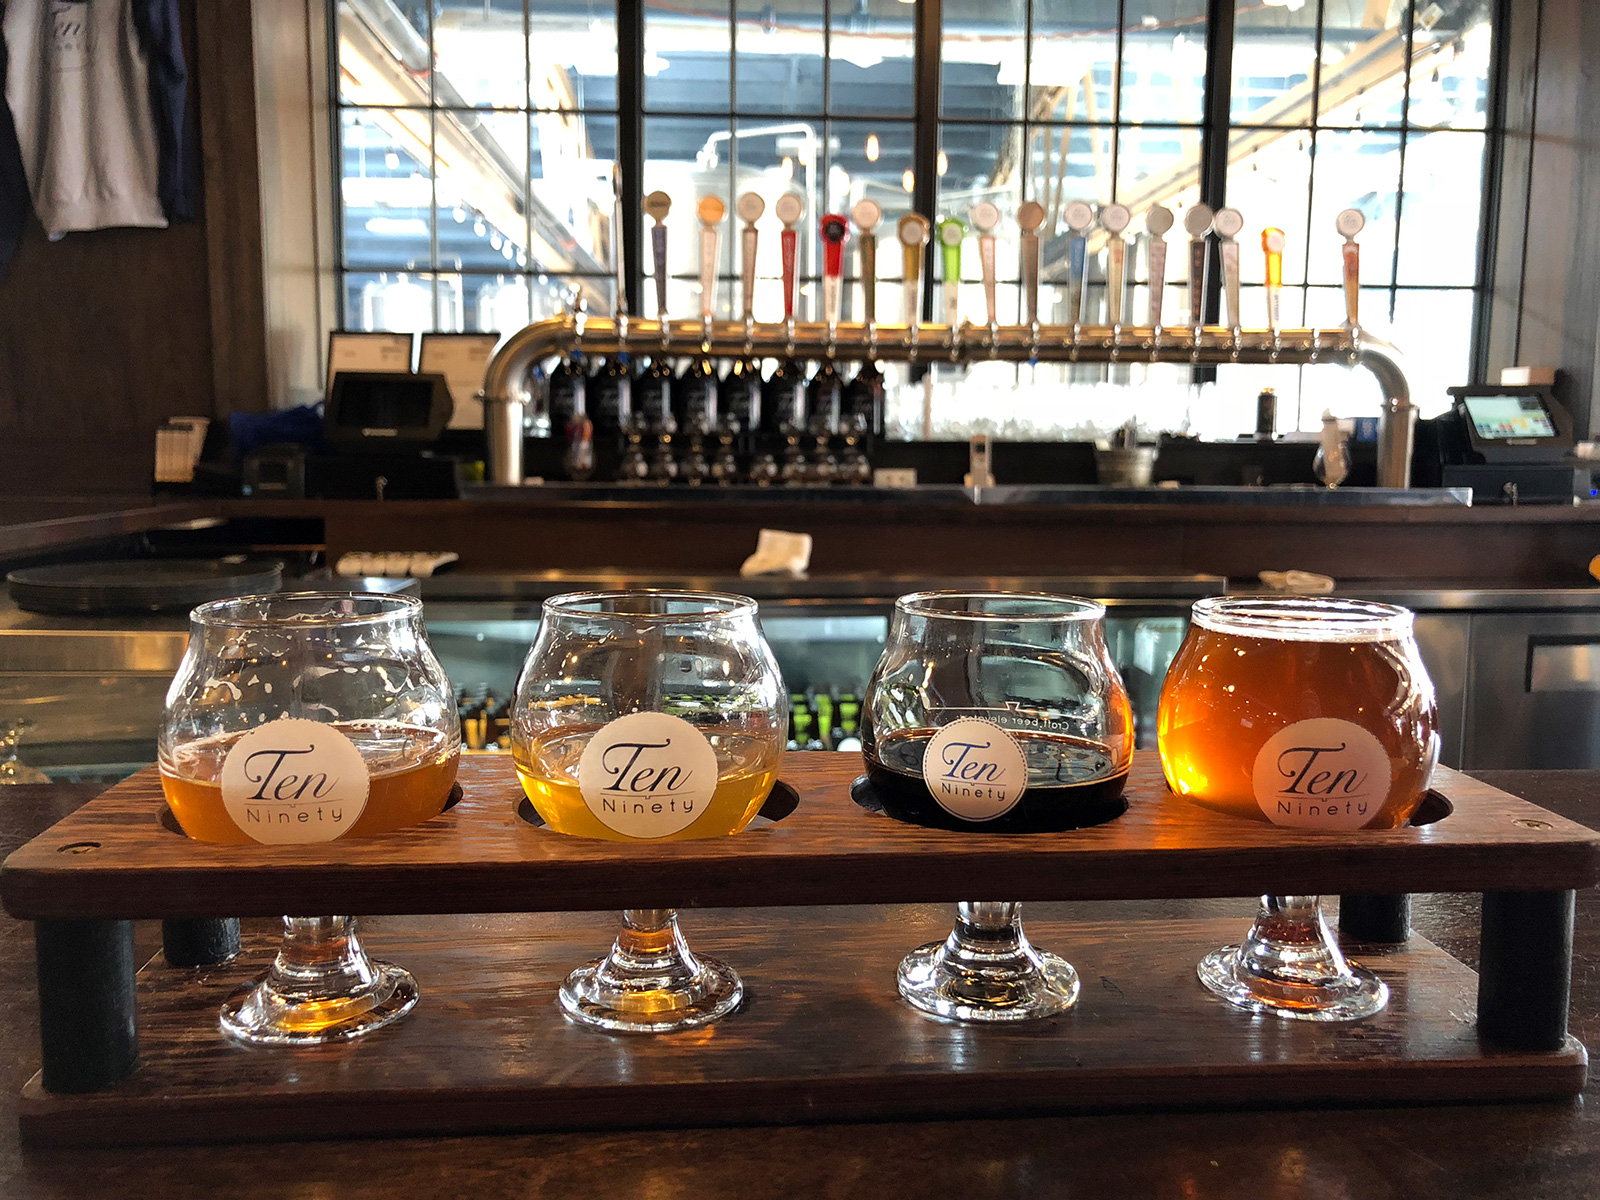 Ten Ninety Brewing Co. by Jets Like Taxis / Hopsmash